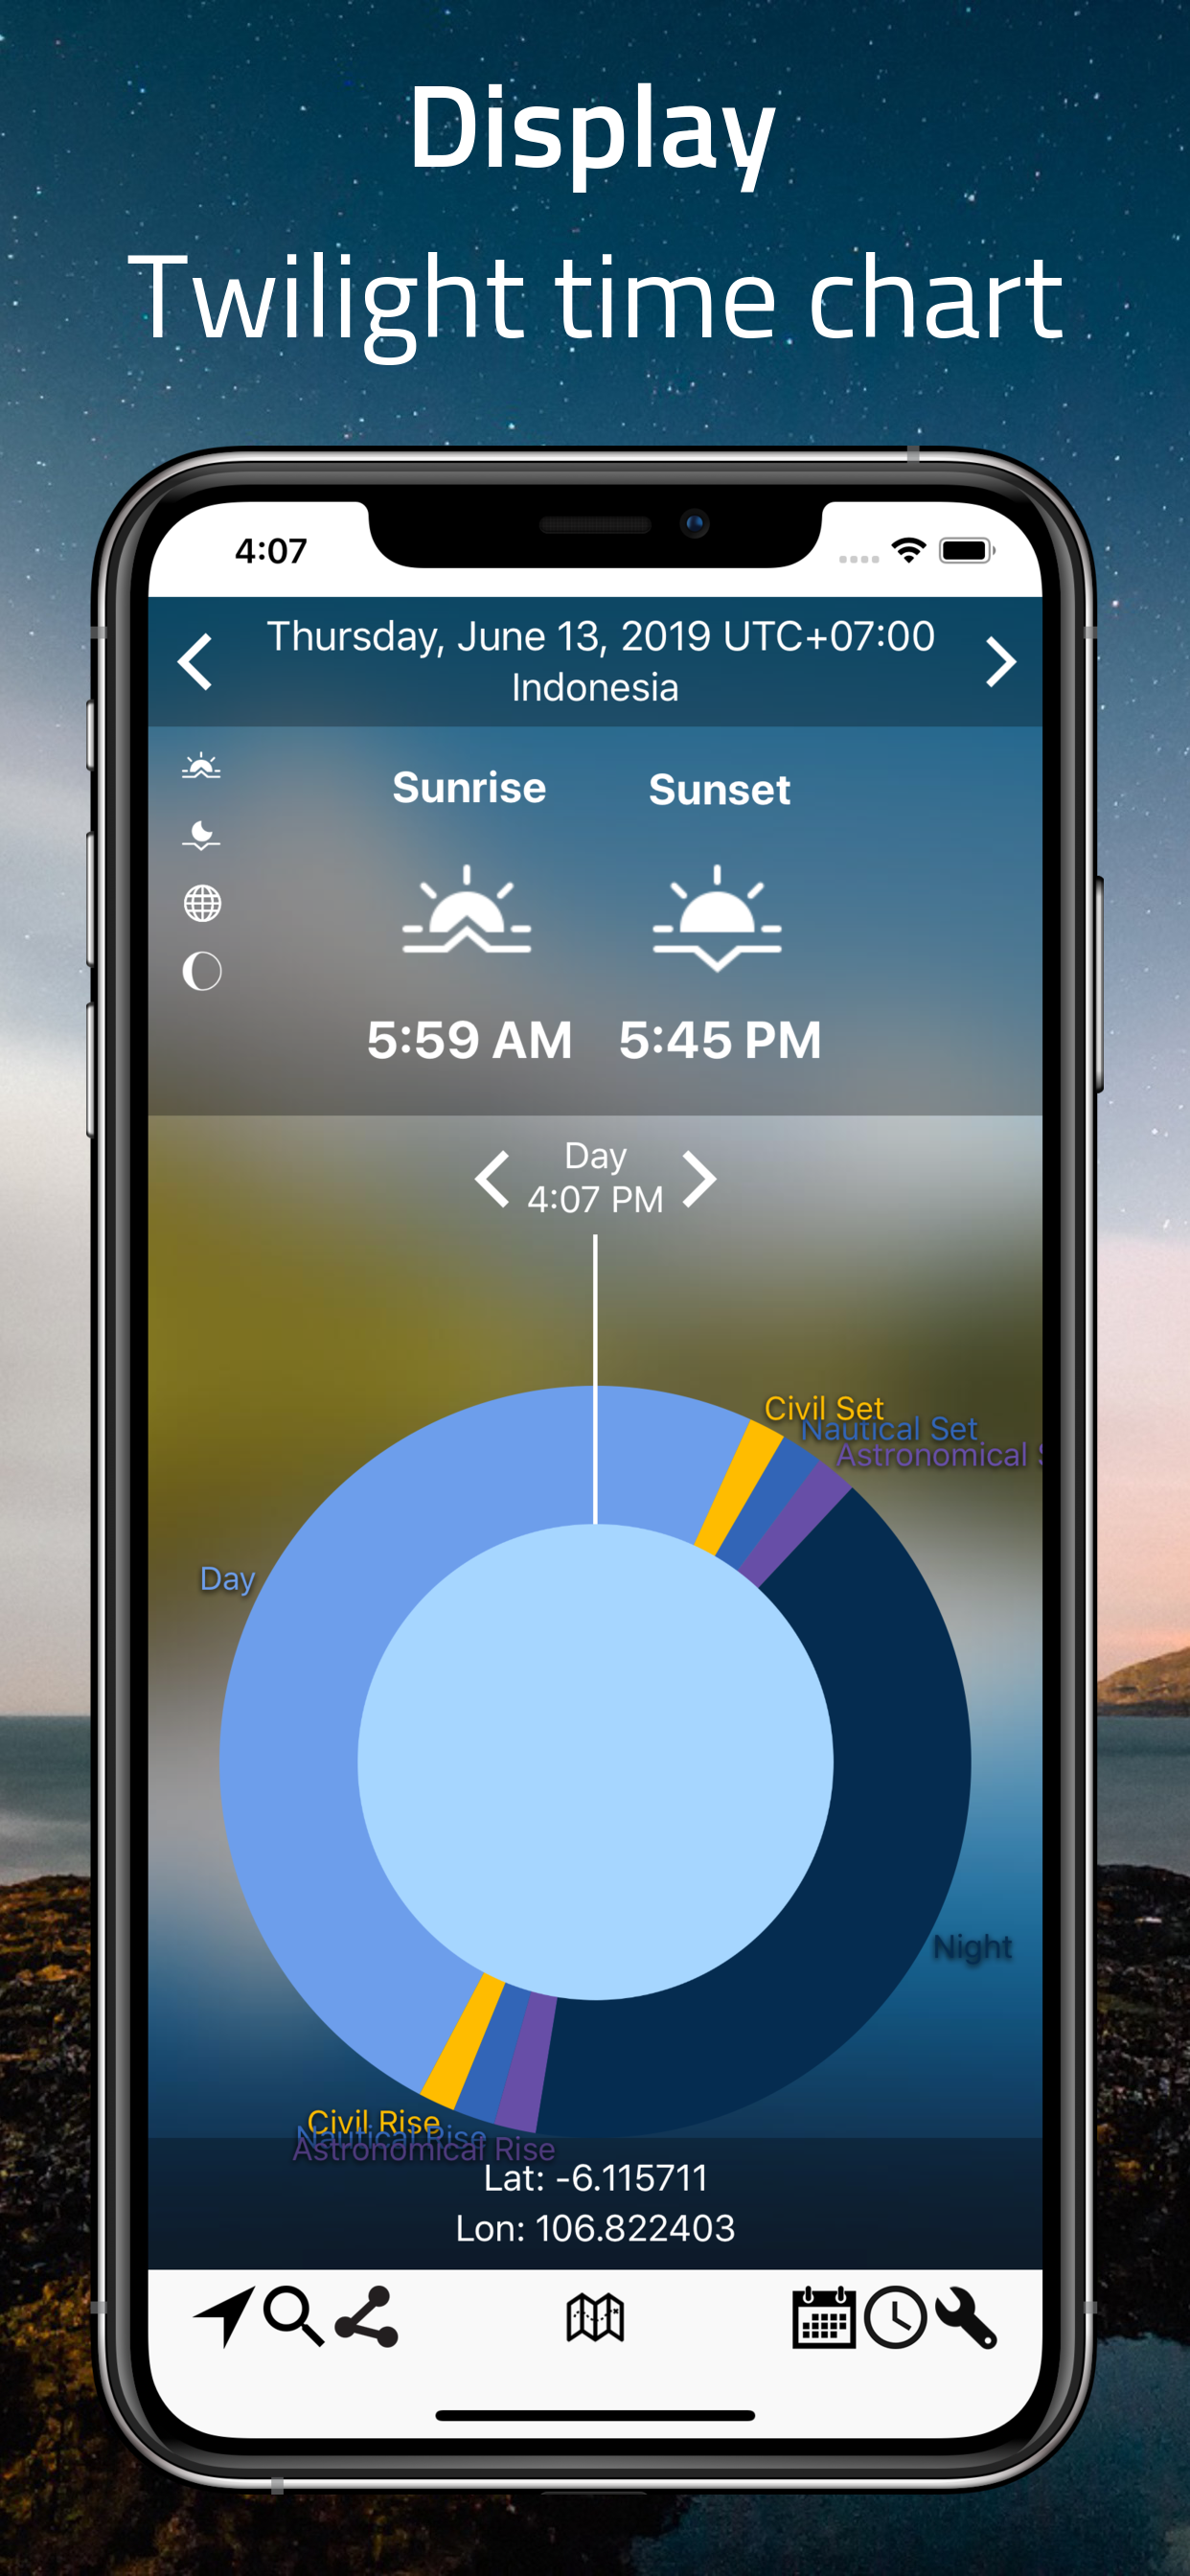 iPhone Xs Max-01Sunmap - Display_framed.png